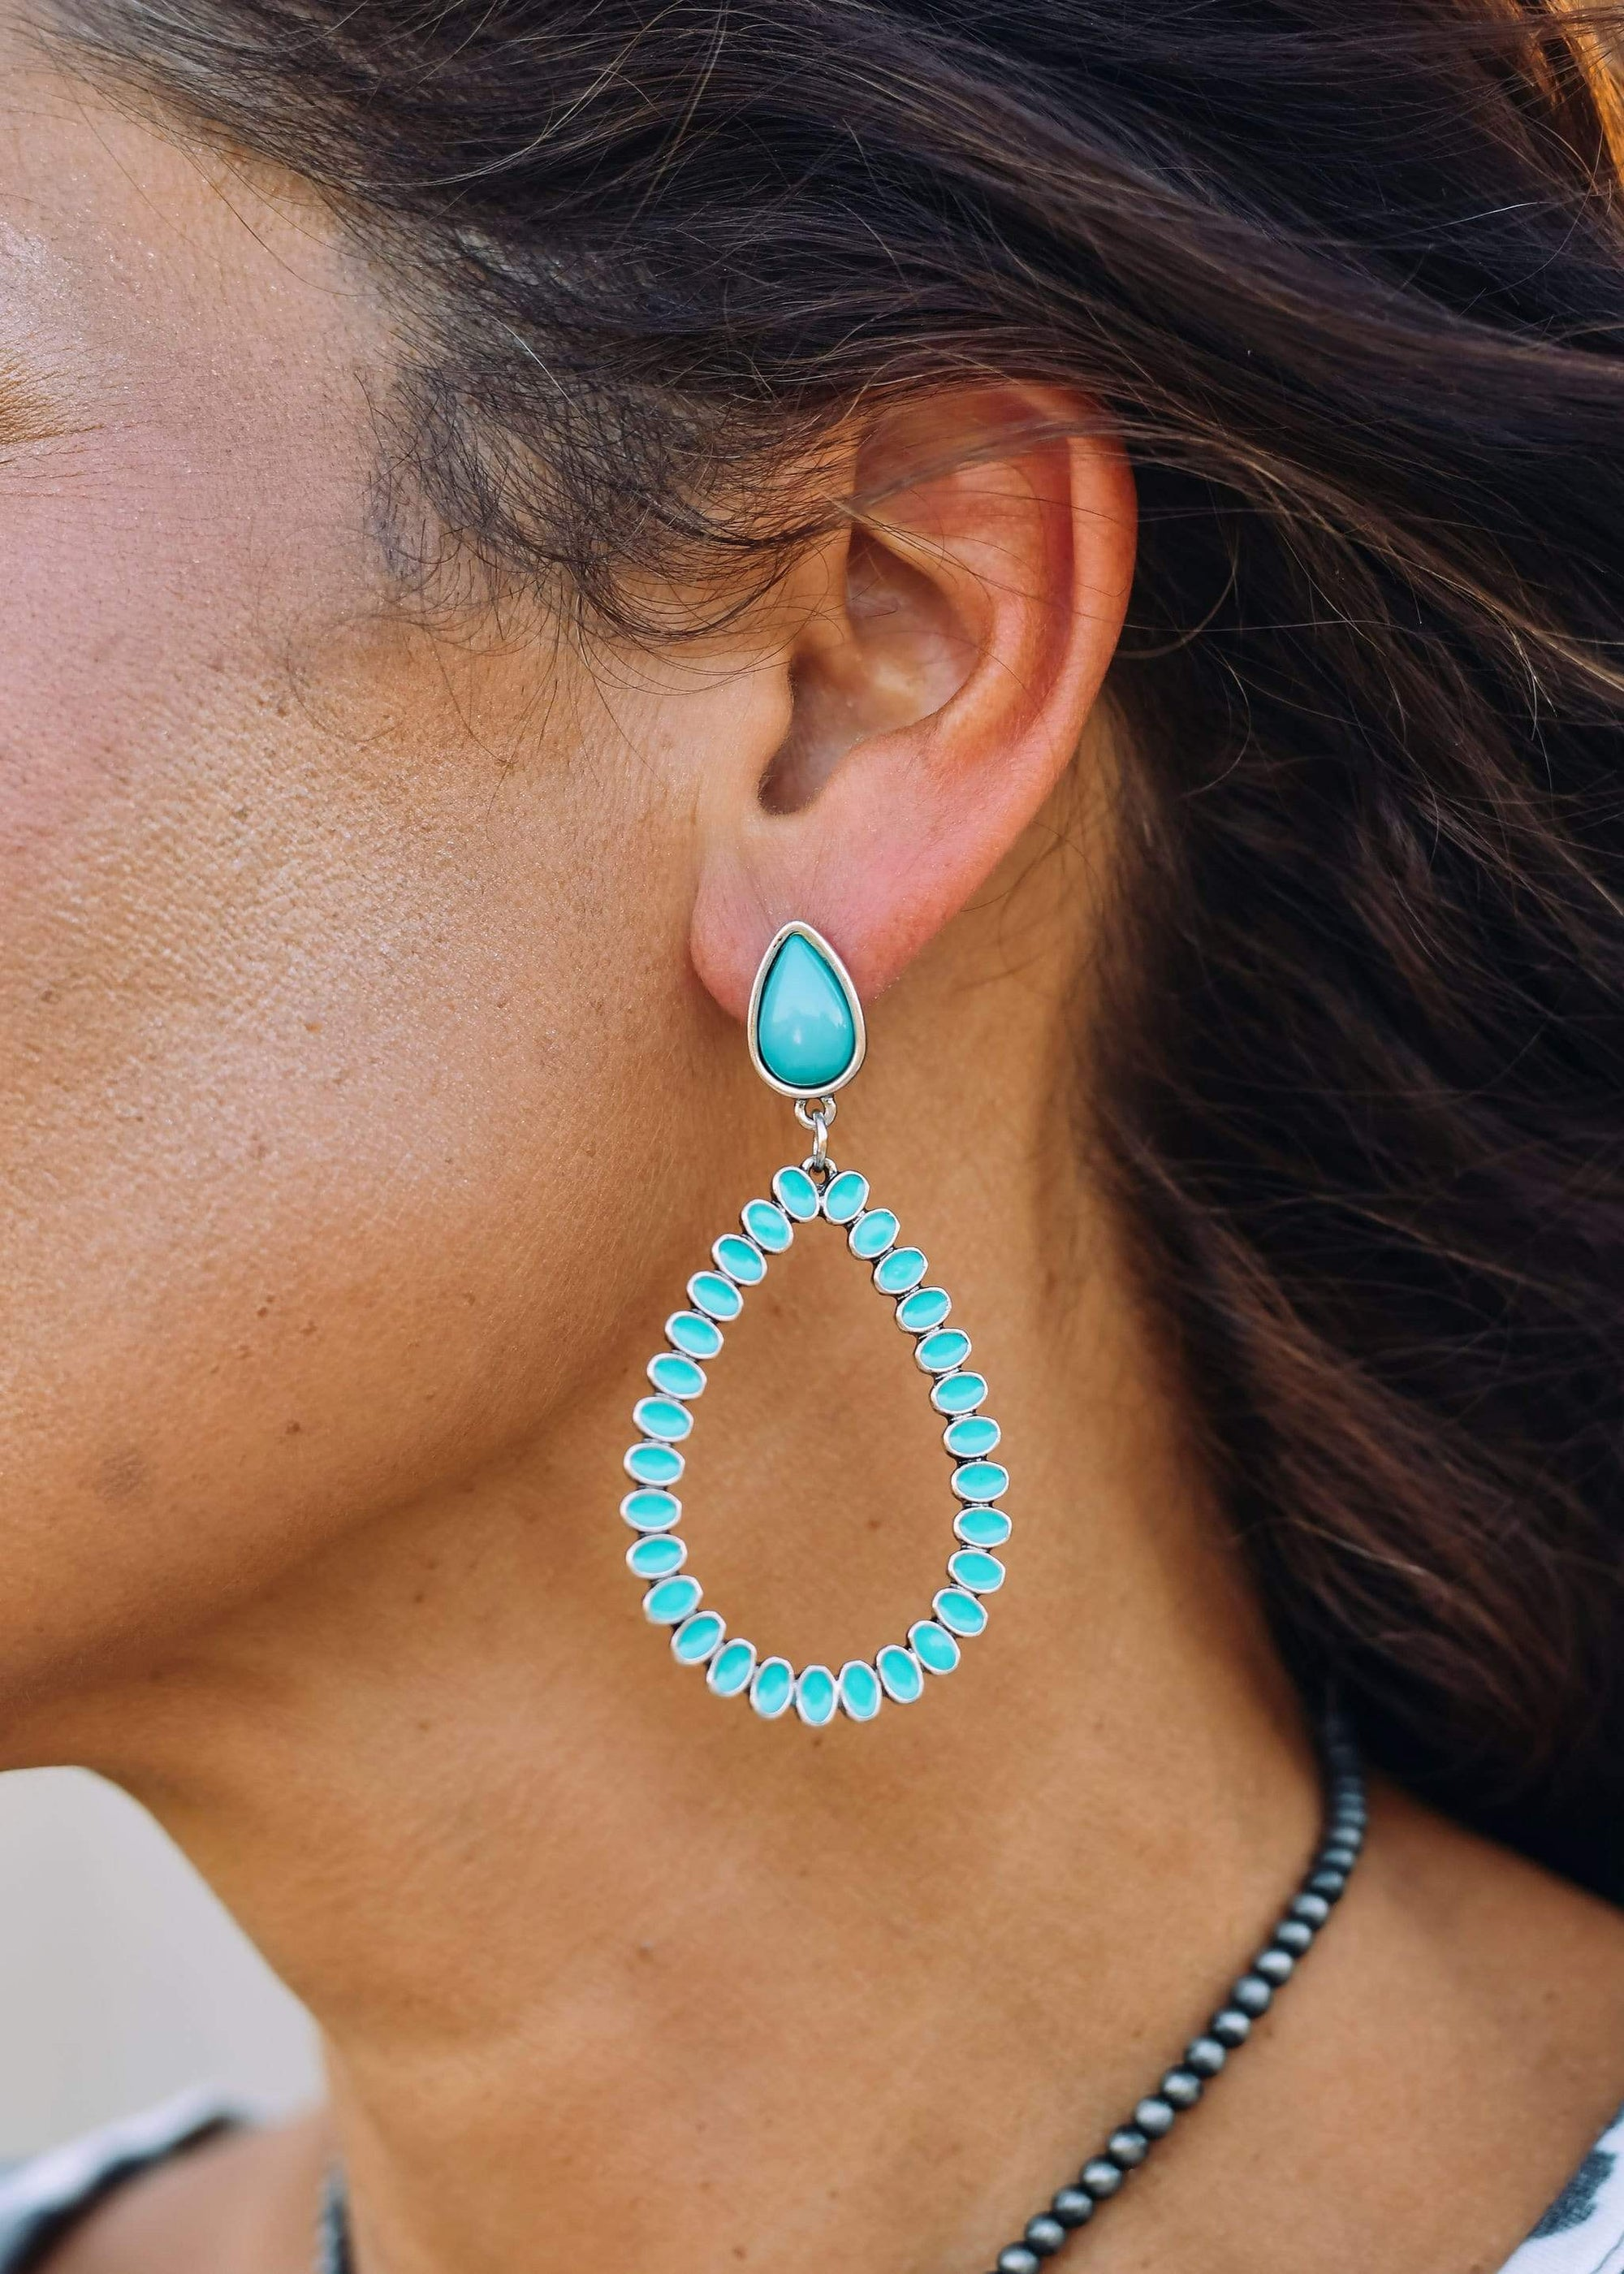 Accessorize In Style Fashion Earrings Fashion Post Teardrop Earrings - Turquoise